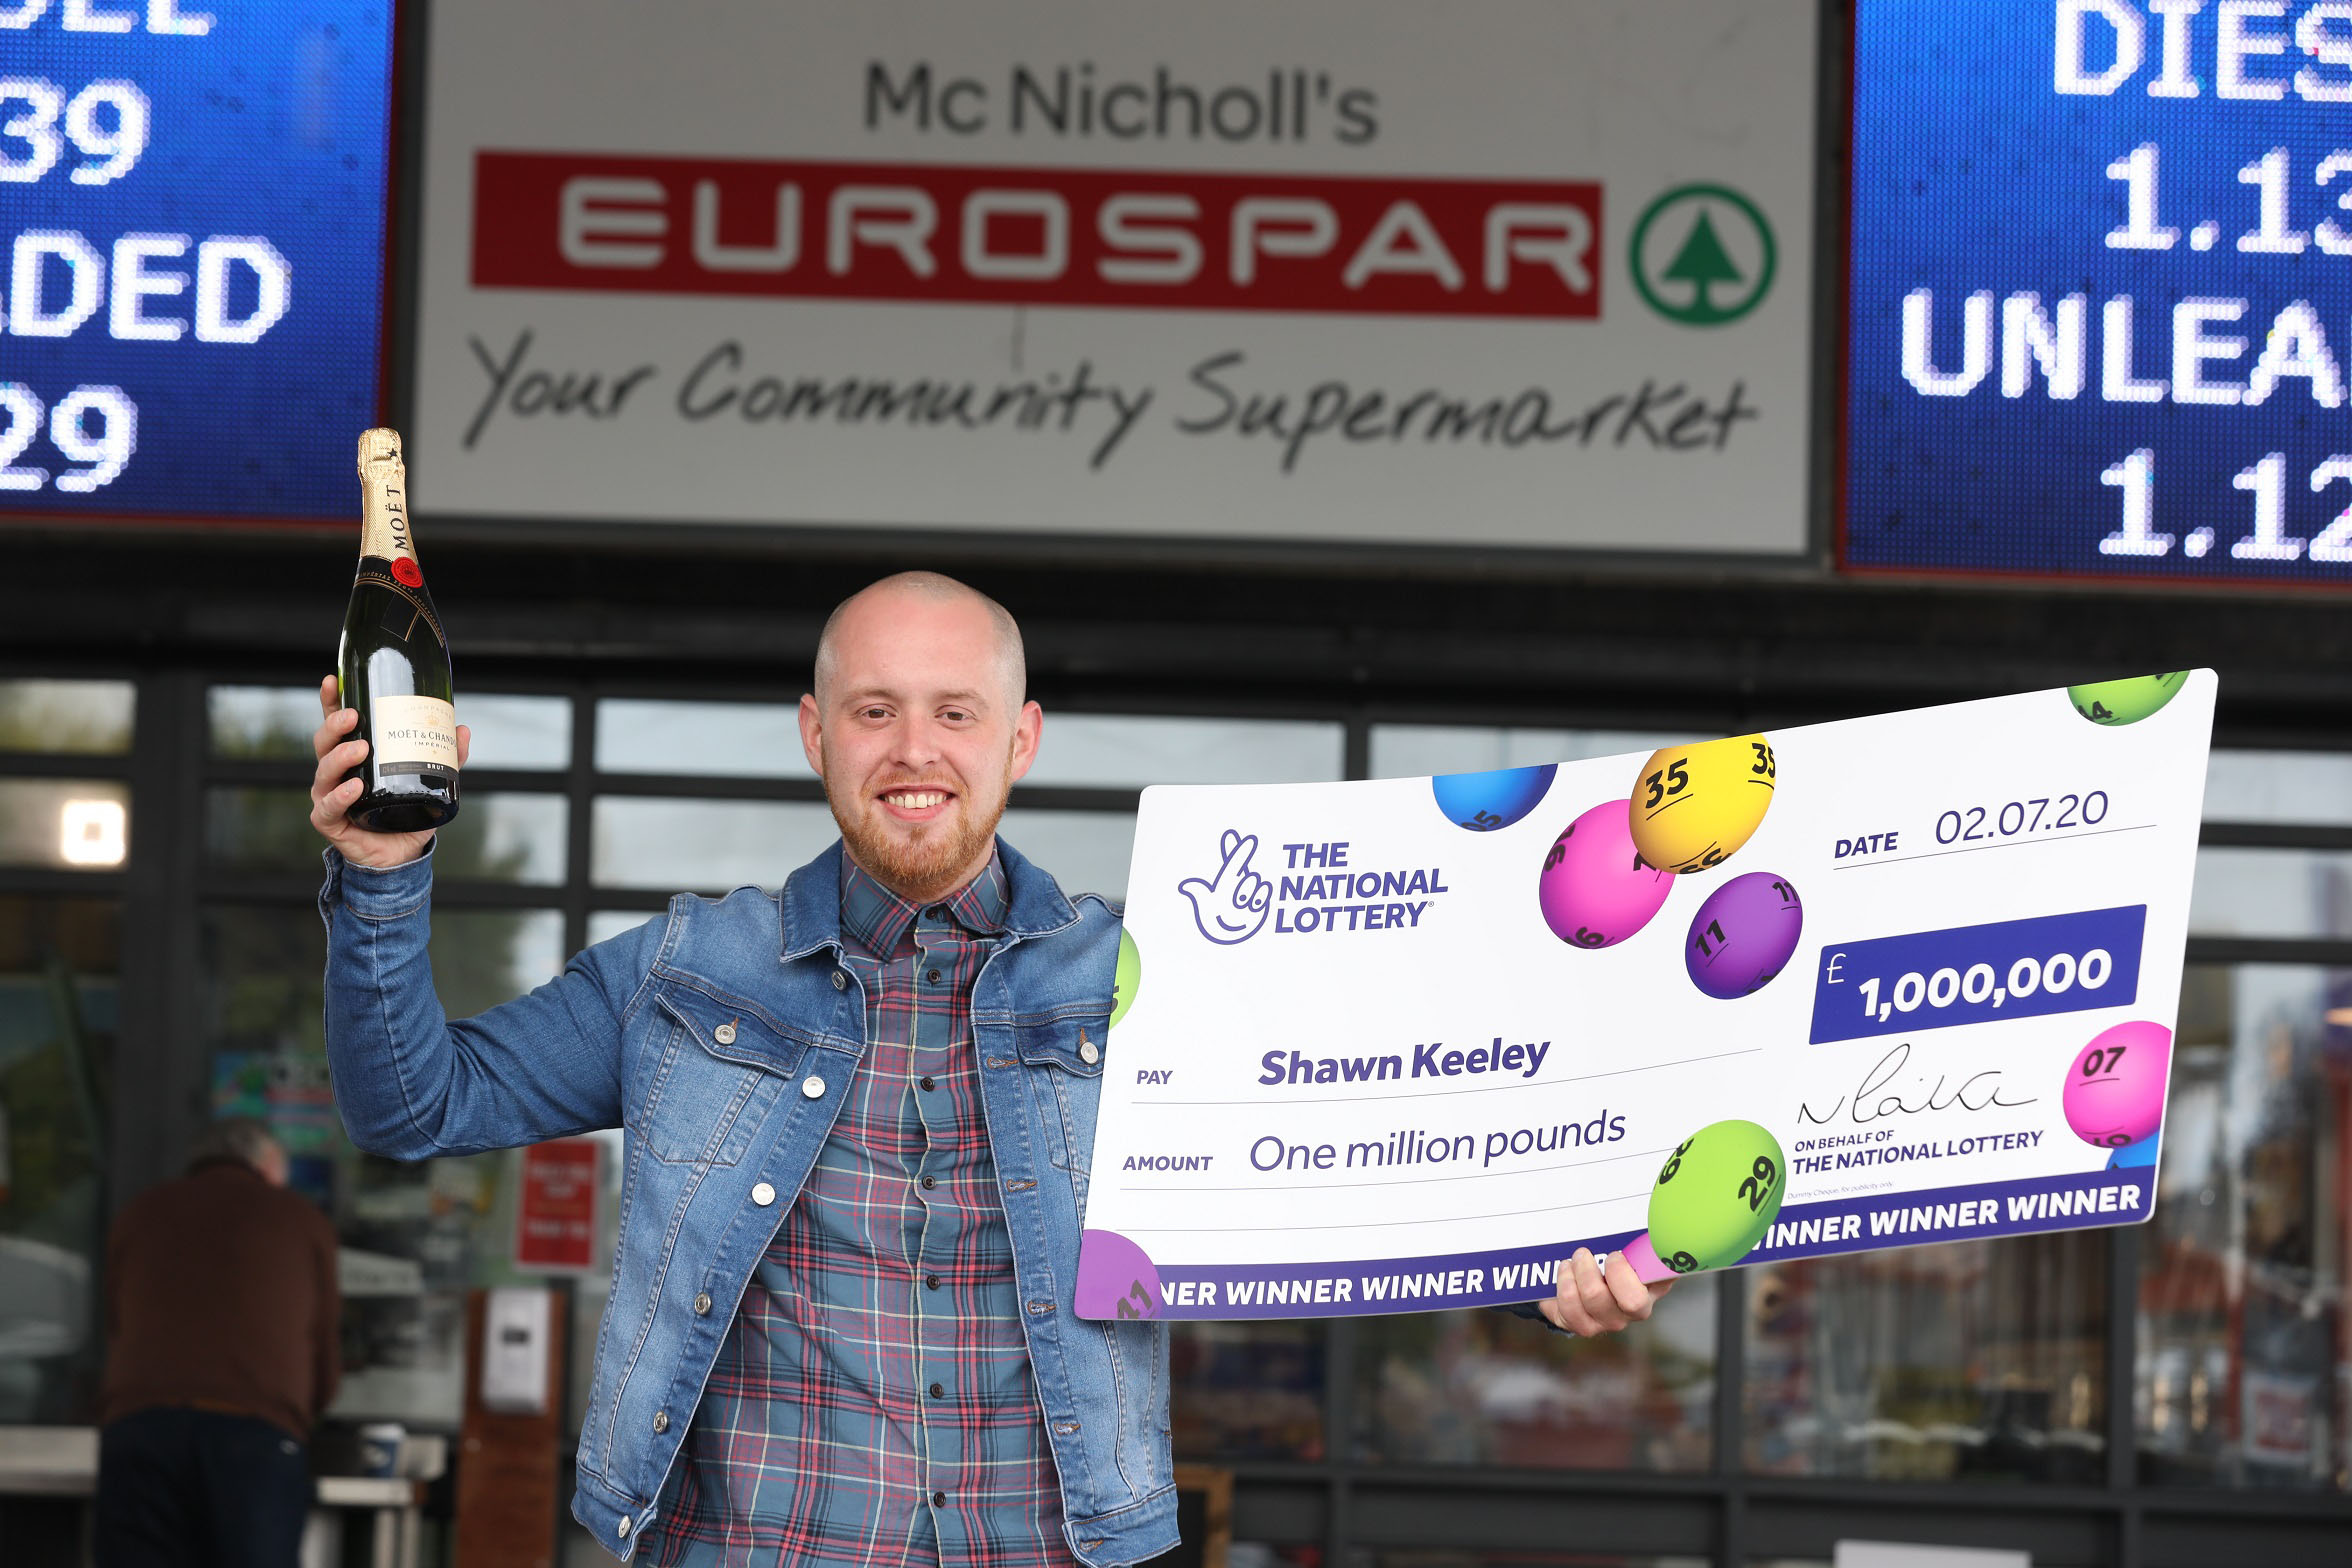 THANKS A MILLION!: Shawn Keeley (26) from Dungiven celebrates becoming Northern Ireland's latest National Lottery millionaire - after winning a massive £1,000,000 on a National Lottery Scratchcard. Shawn bought the winning National Lottery '£50M Mega Cash Showdown' Scratchcard from McNicholl's Eurospar store at 39 Station Road, Dungiven, BT47 4LN. The card costs £5 and offers a 1 in 3.51 overall chance of winning a prize, with prizes ranging from £5 up to the top prize of £1,000,000.